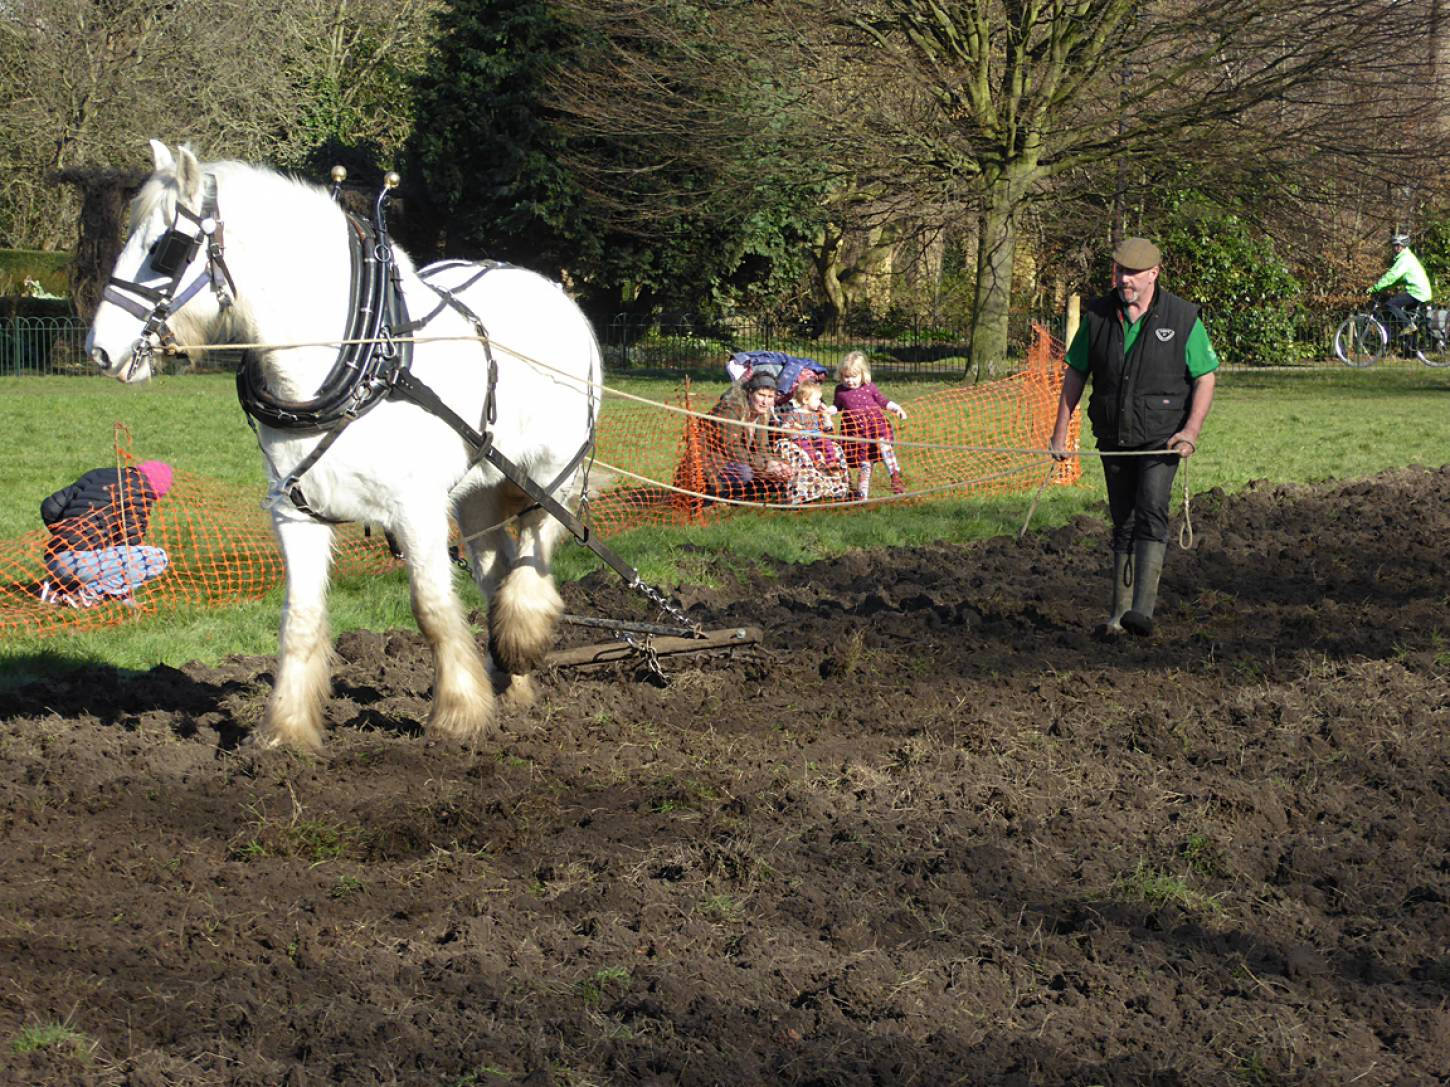 Shire horse Heath and ploughman Tom Nixon from <a href='http://www.operationcentaur.com/' target='_blank'>Operation Centaur</a> return to harrow our wheat patch on <a href='https://www.friendsofruskinpark.org.uk/' target='_blank'>Ruskin Park</a> - 1:46pm&nbsp;17<sup>th</sup>&nbsp;Feb.&nbsp;'18  <a href='http://maps.google.com/?t=h&q=51.464606,-0.092567&z=18&output=embed' target=_blank><img src='http://www.brockwell-bake.org.uk/img/marker.png' style='border:none;vertical-align:top' height=16px></a>